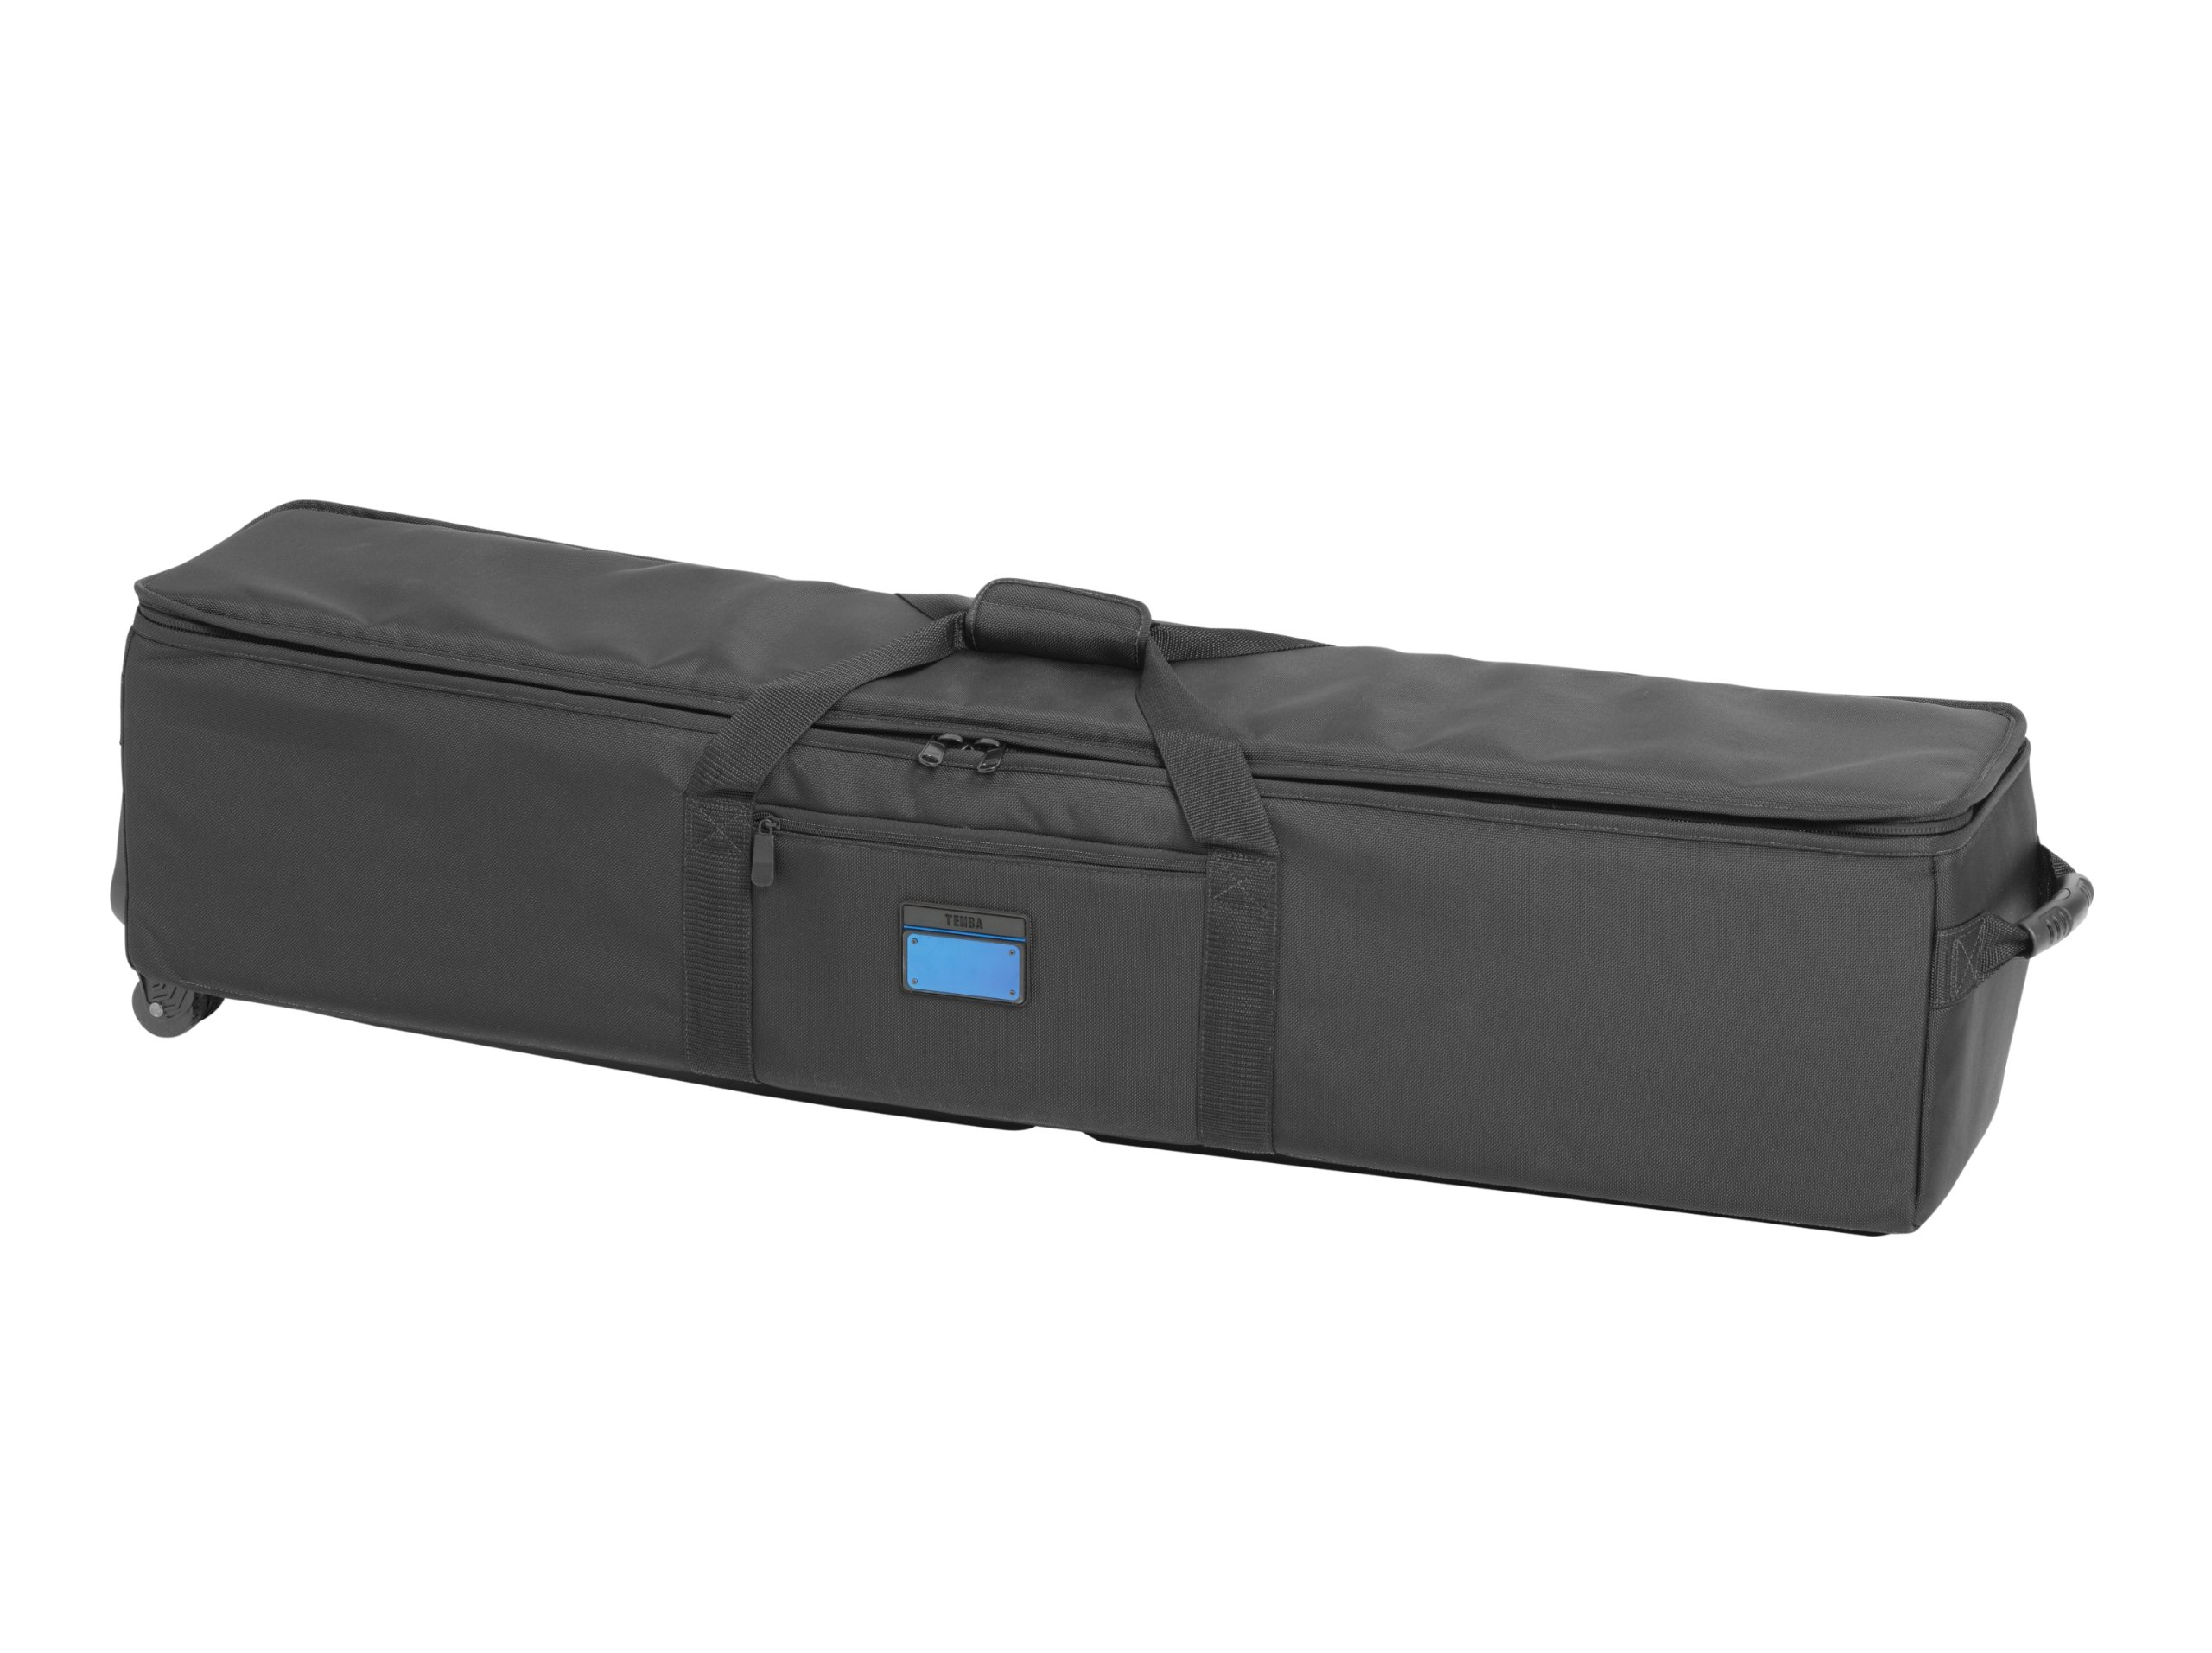 Tenba Transport 48in Rolling Tripod/Grip Case (634-519) Padded Equipment Case with Weatherproof Nylon & Padded Interior by Tenba